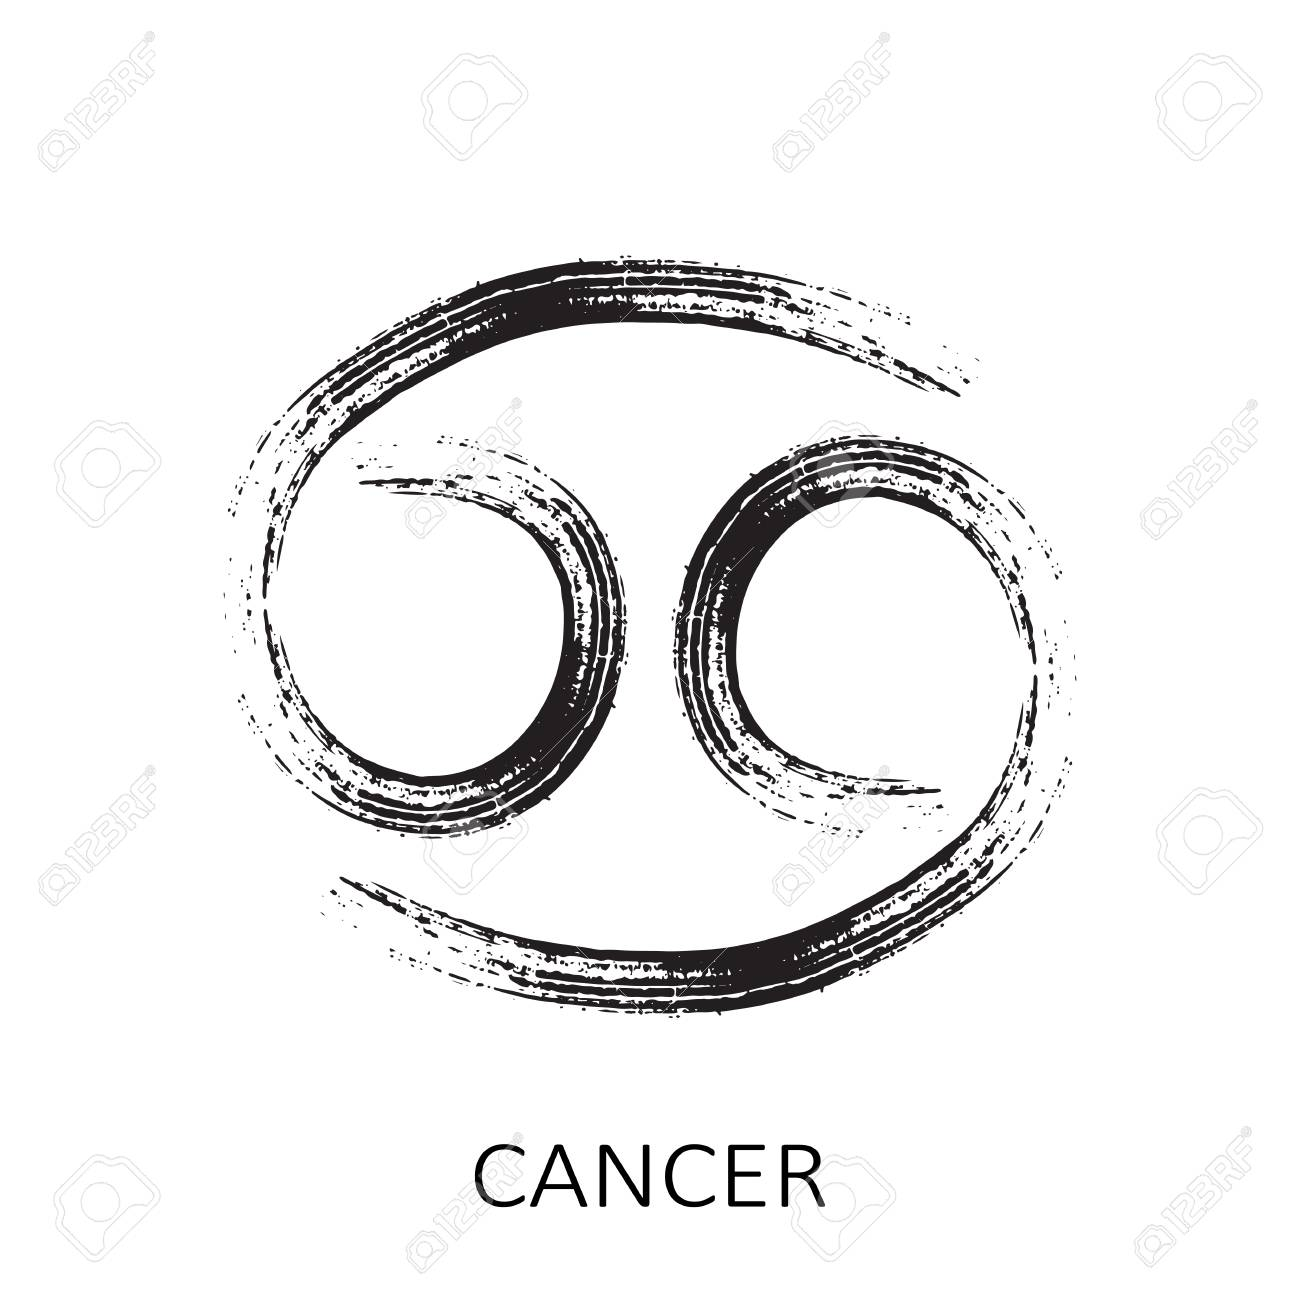 October 12222 Horoscope: Predictions for Cancer